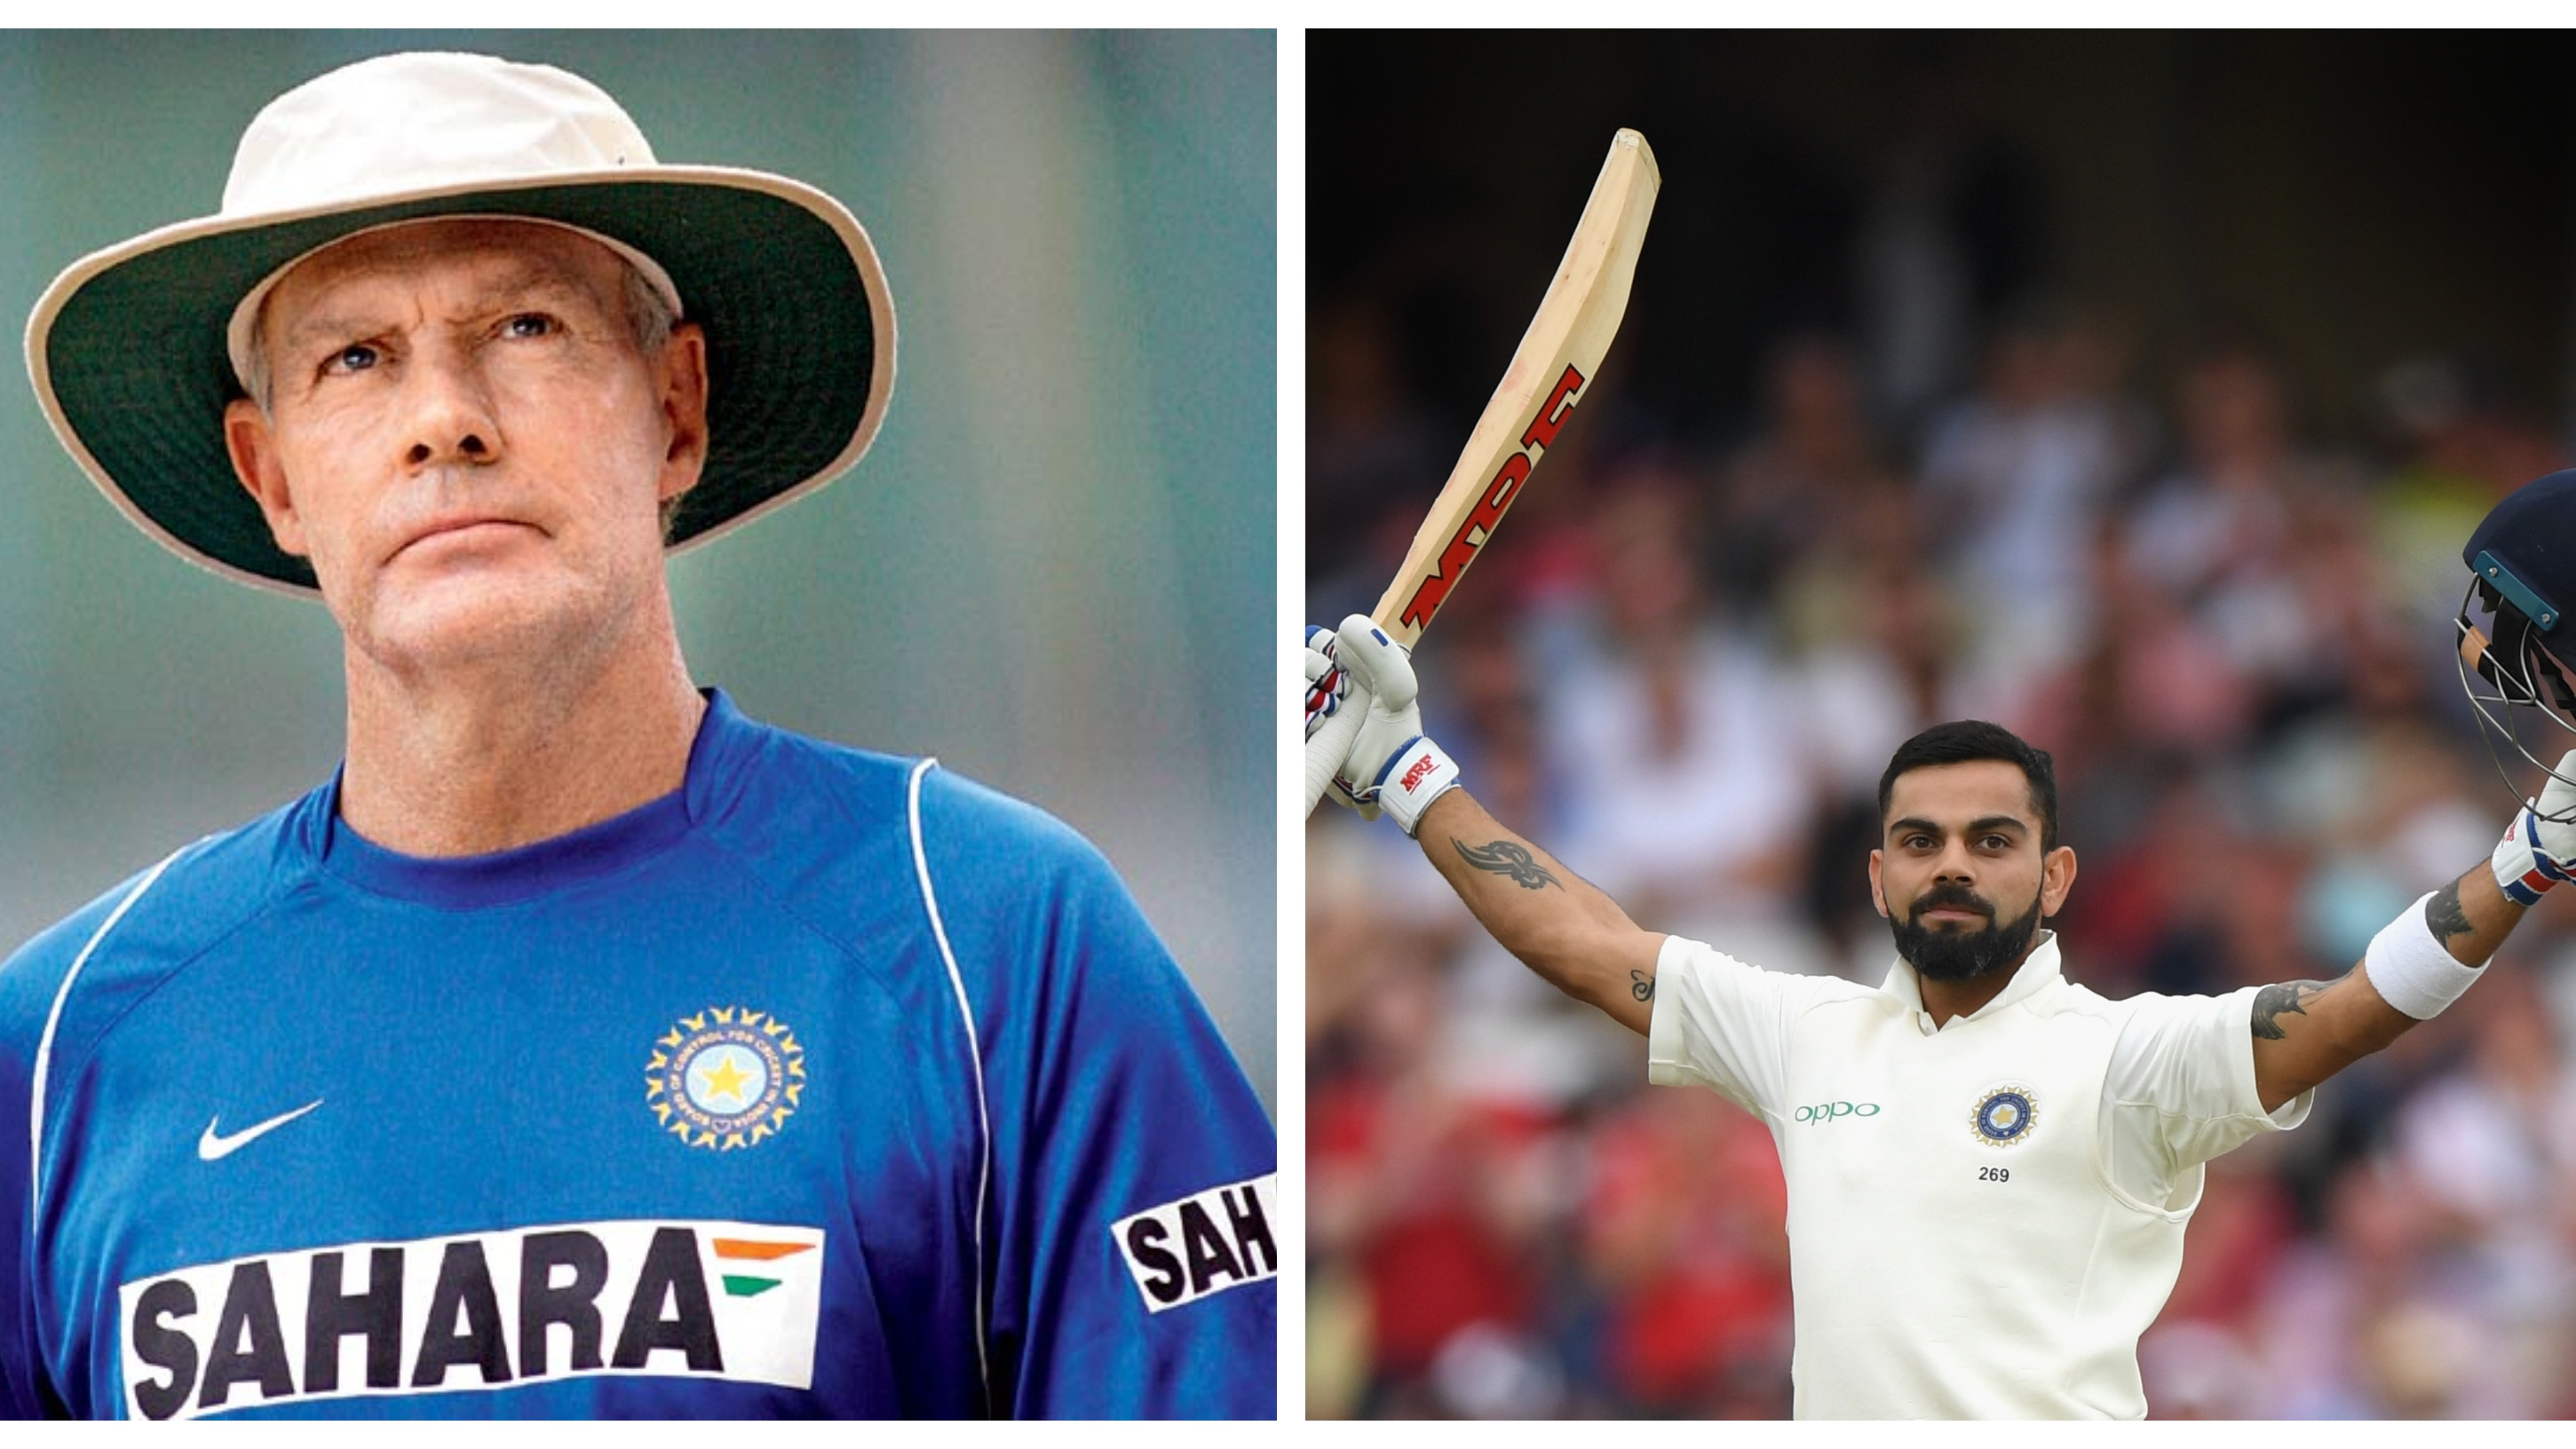 Virat Kohli is one of the best in recent times, says Greg Chappell